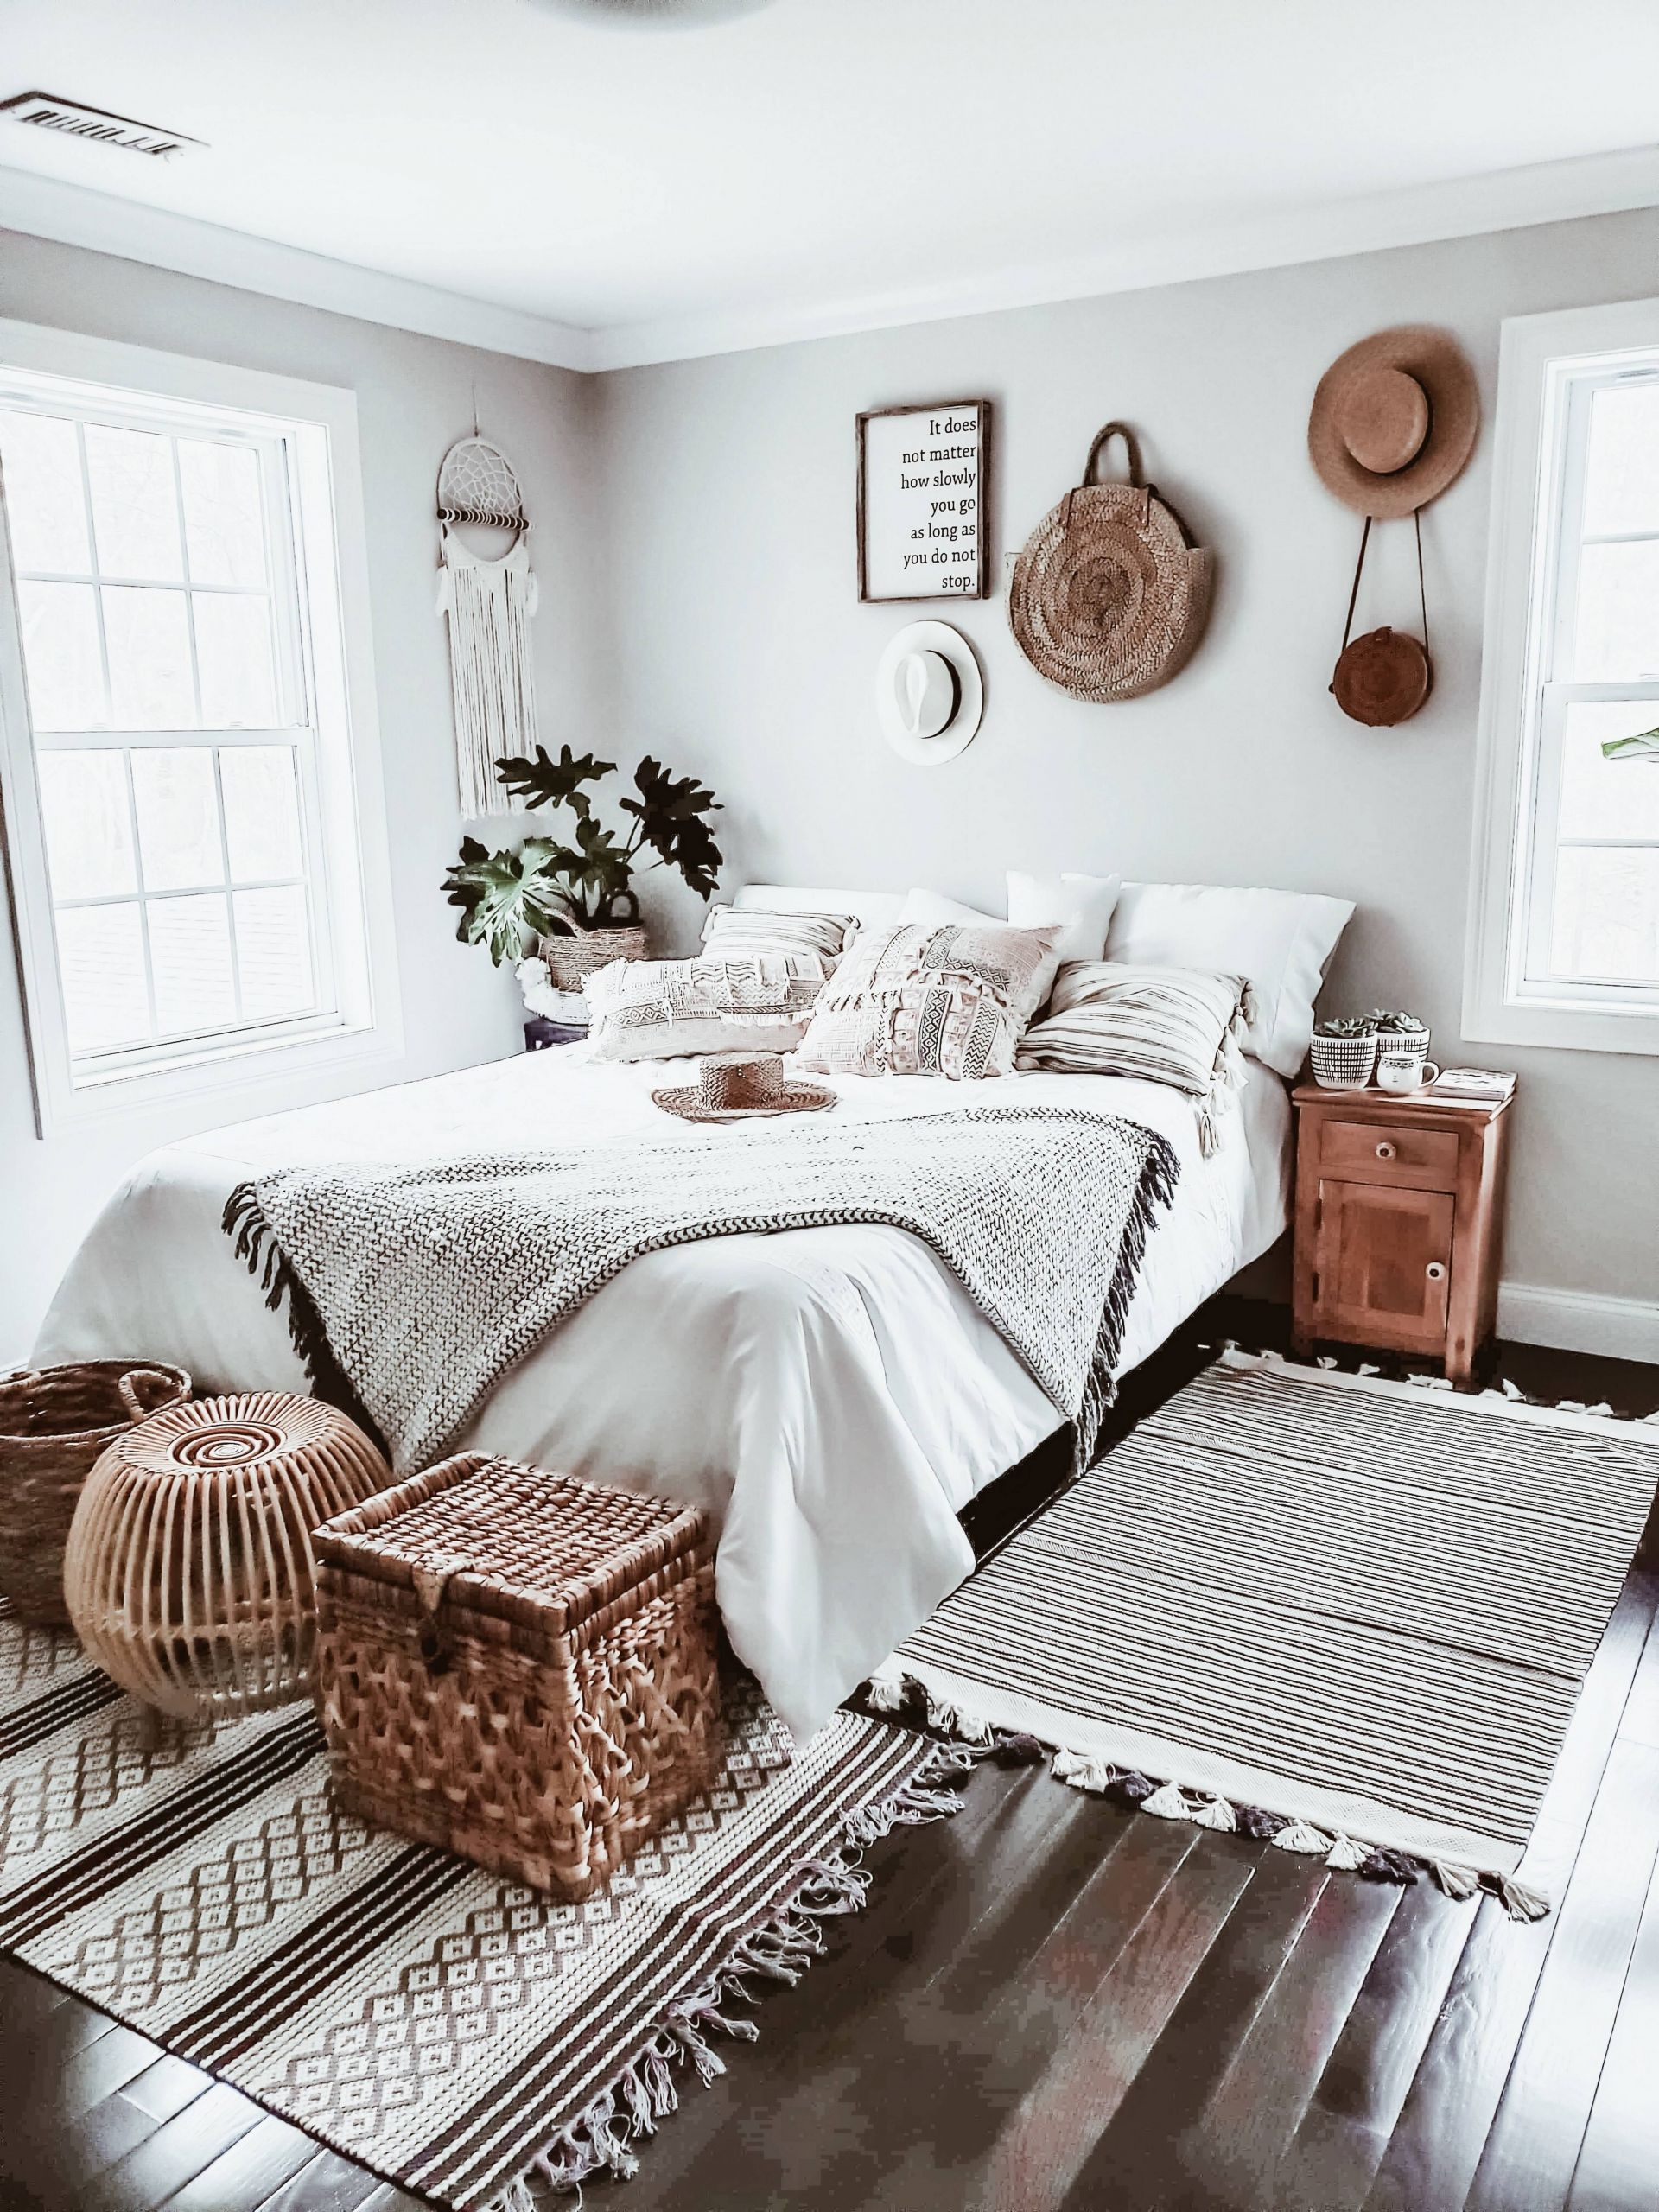 Chic Boho Bedroom Decor Ideas that Will Get you Excited about Decorating 8